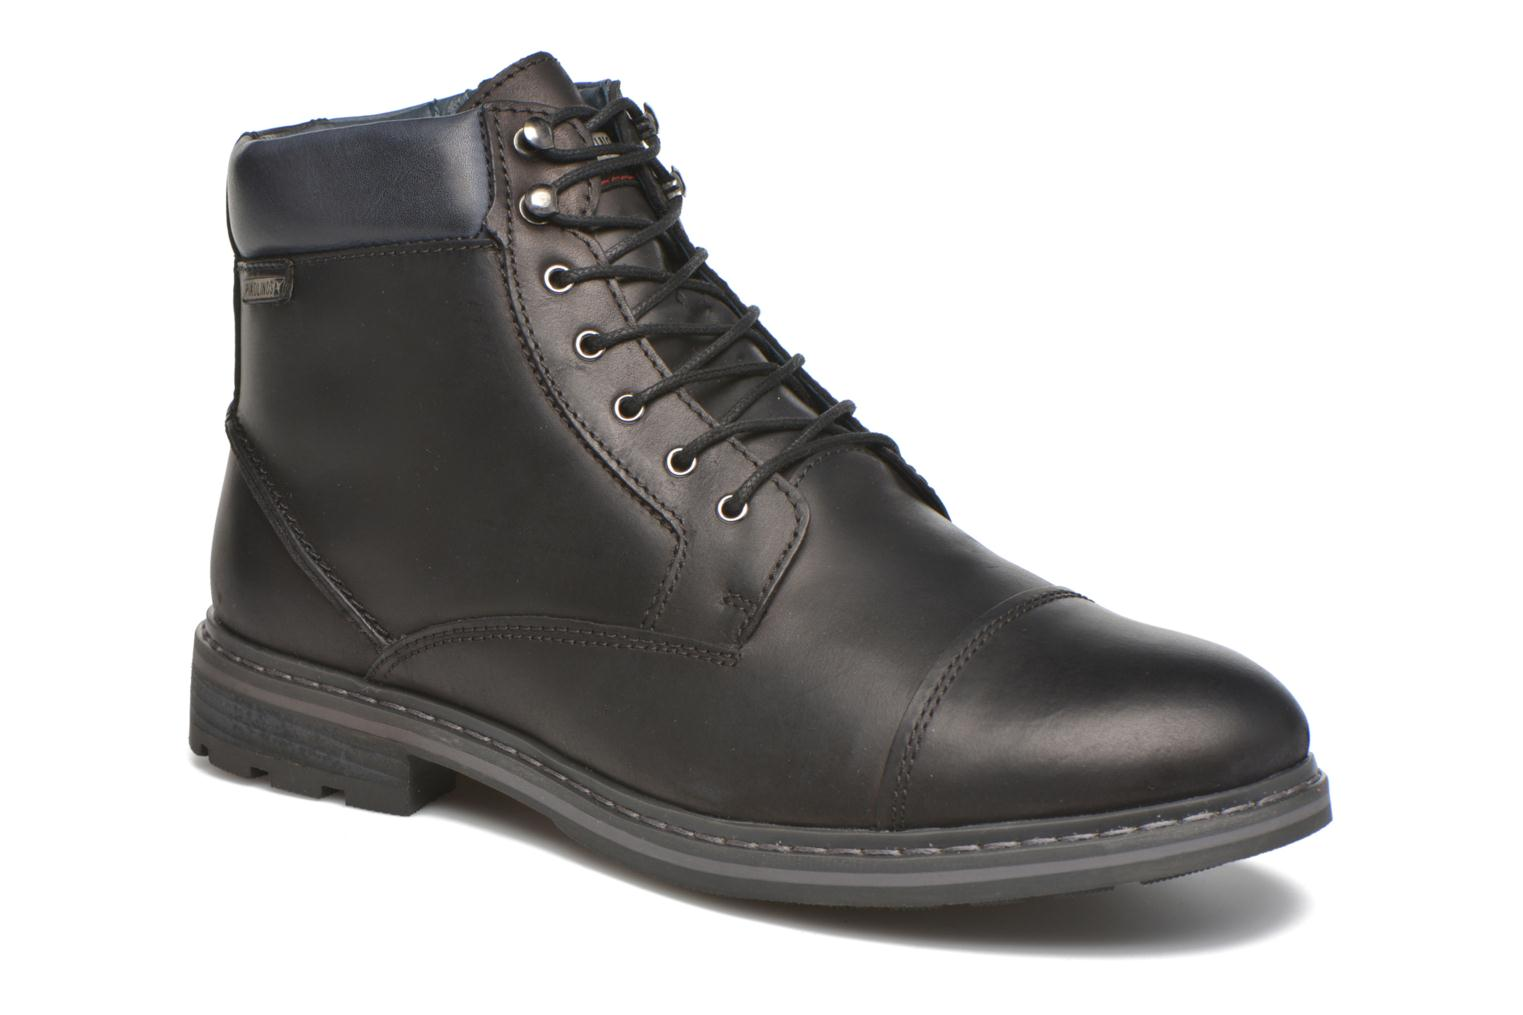 Marques Chaussure homme Pikolinos homme CACERES M9E-8104SP Black